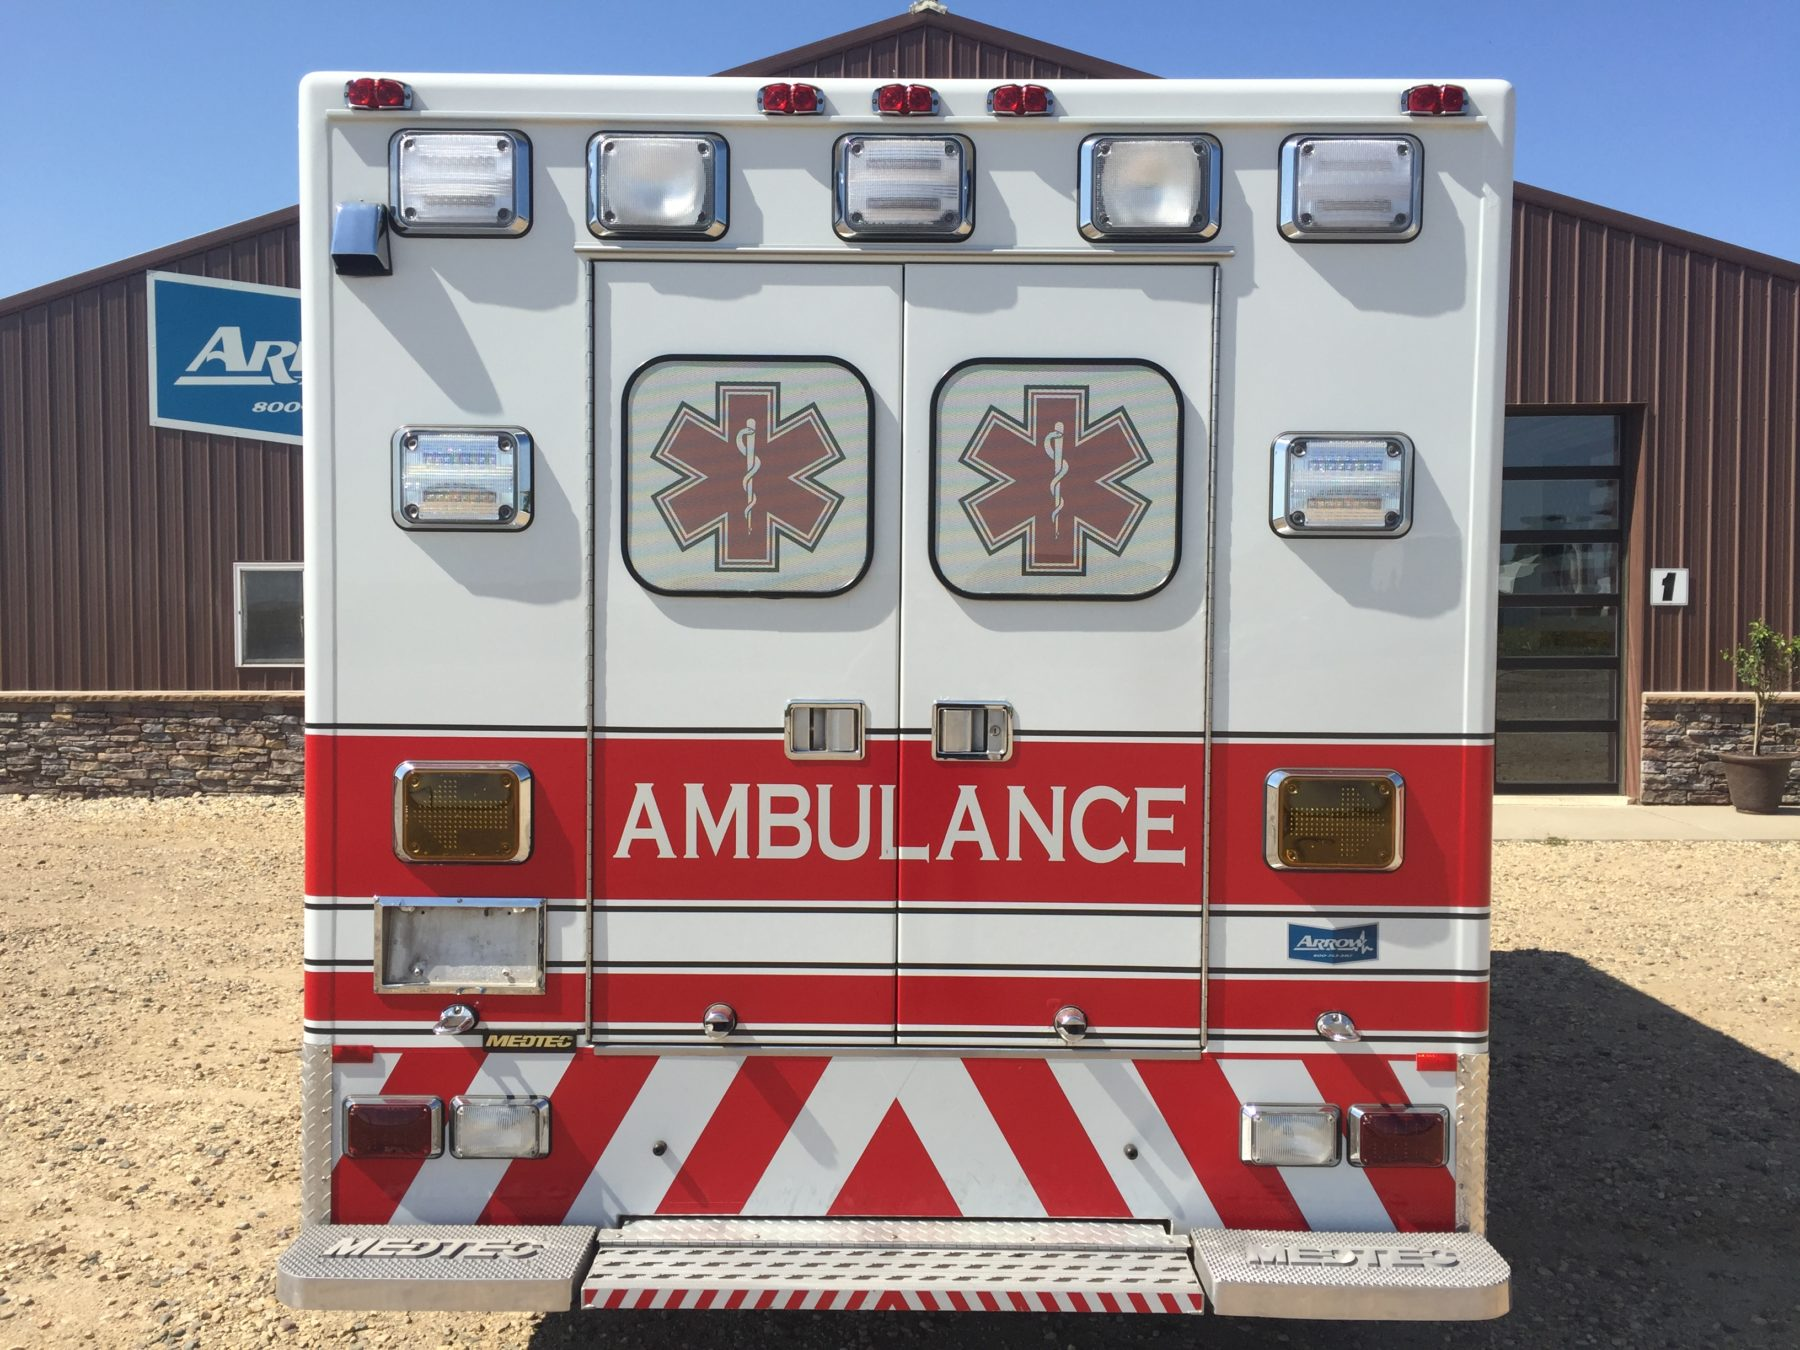 2009 Dodge 4500 Heavy Duty Ambulance For Sale – Picture 8